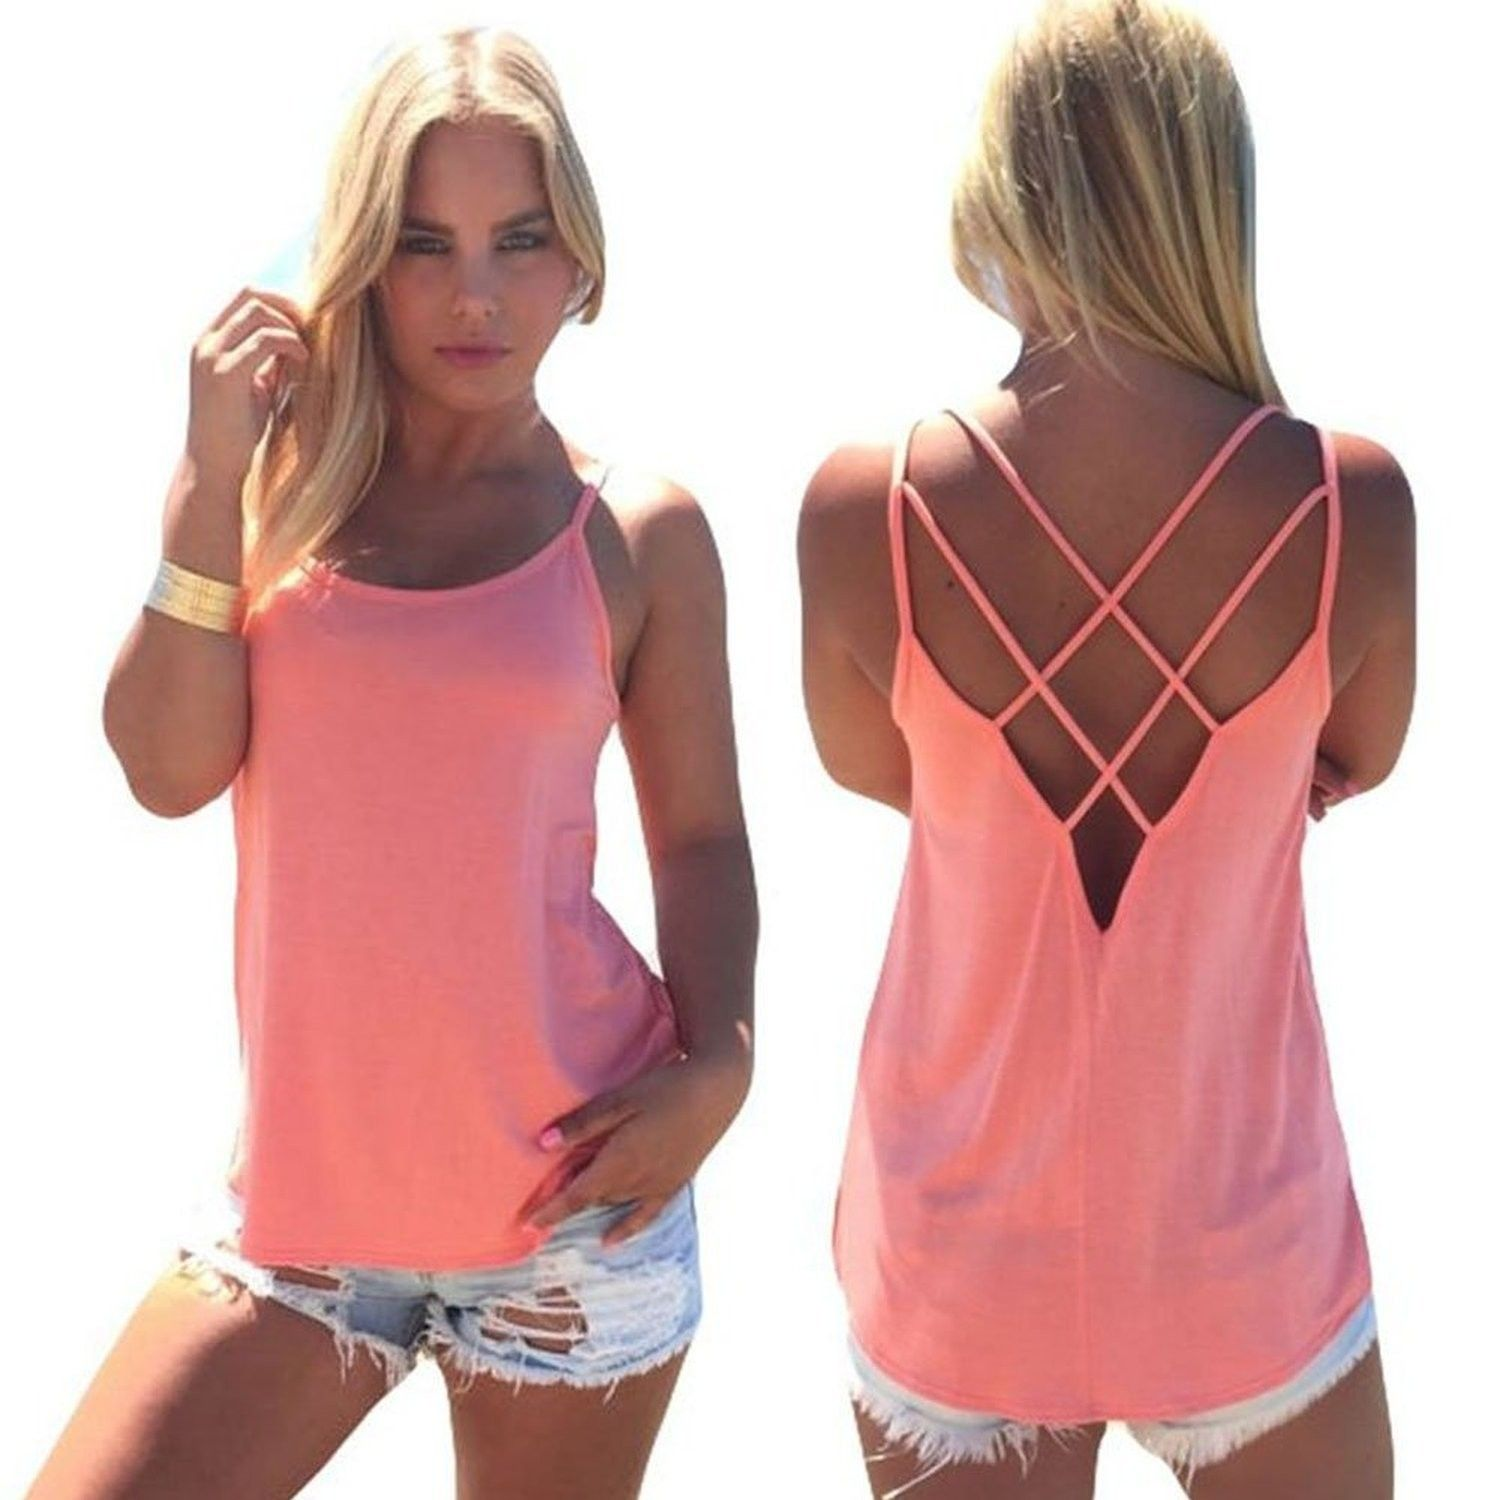 6ed381d4e4a83f Women's Clothing, Tops & Tees, Tanks & Camis, Top Tops For Women Trendy  Tank Top Crisscross Backless Shirts Loose Camisole Top - Pink - C6184XUK7HT  ...